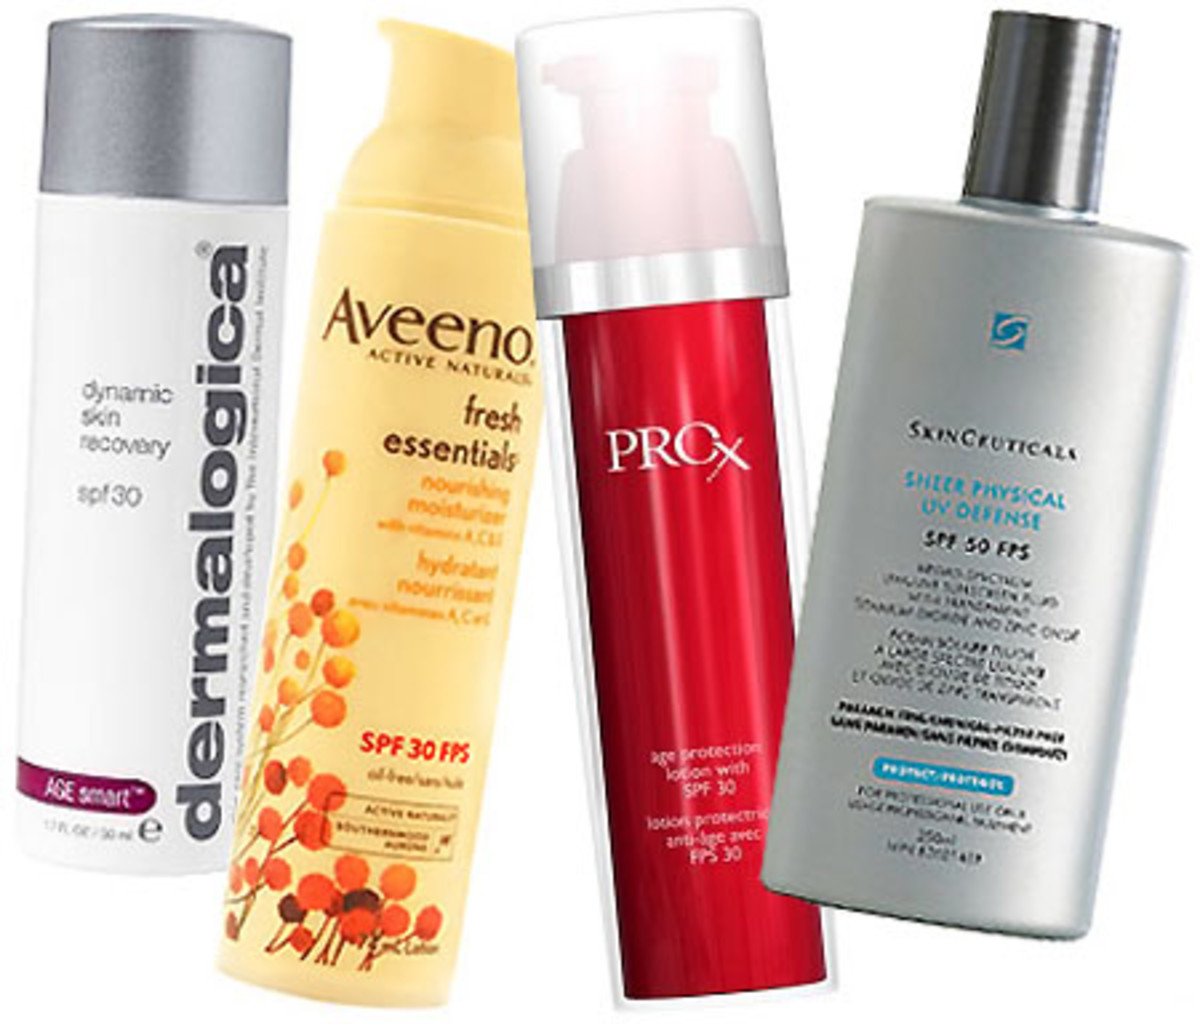 Dermalogica-Dynamic-Skin-Recovery_Aveeno-Fresh-Essentials_Olay Professional Pro X Age Repair Lotion SPF 30_Skinceuticals-Sheer-Physical-UV-Defense